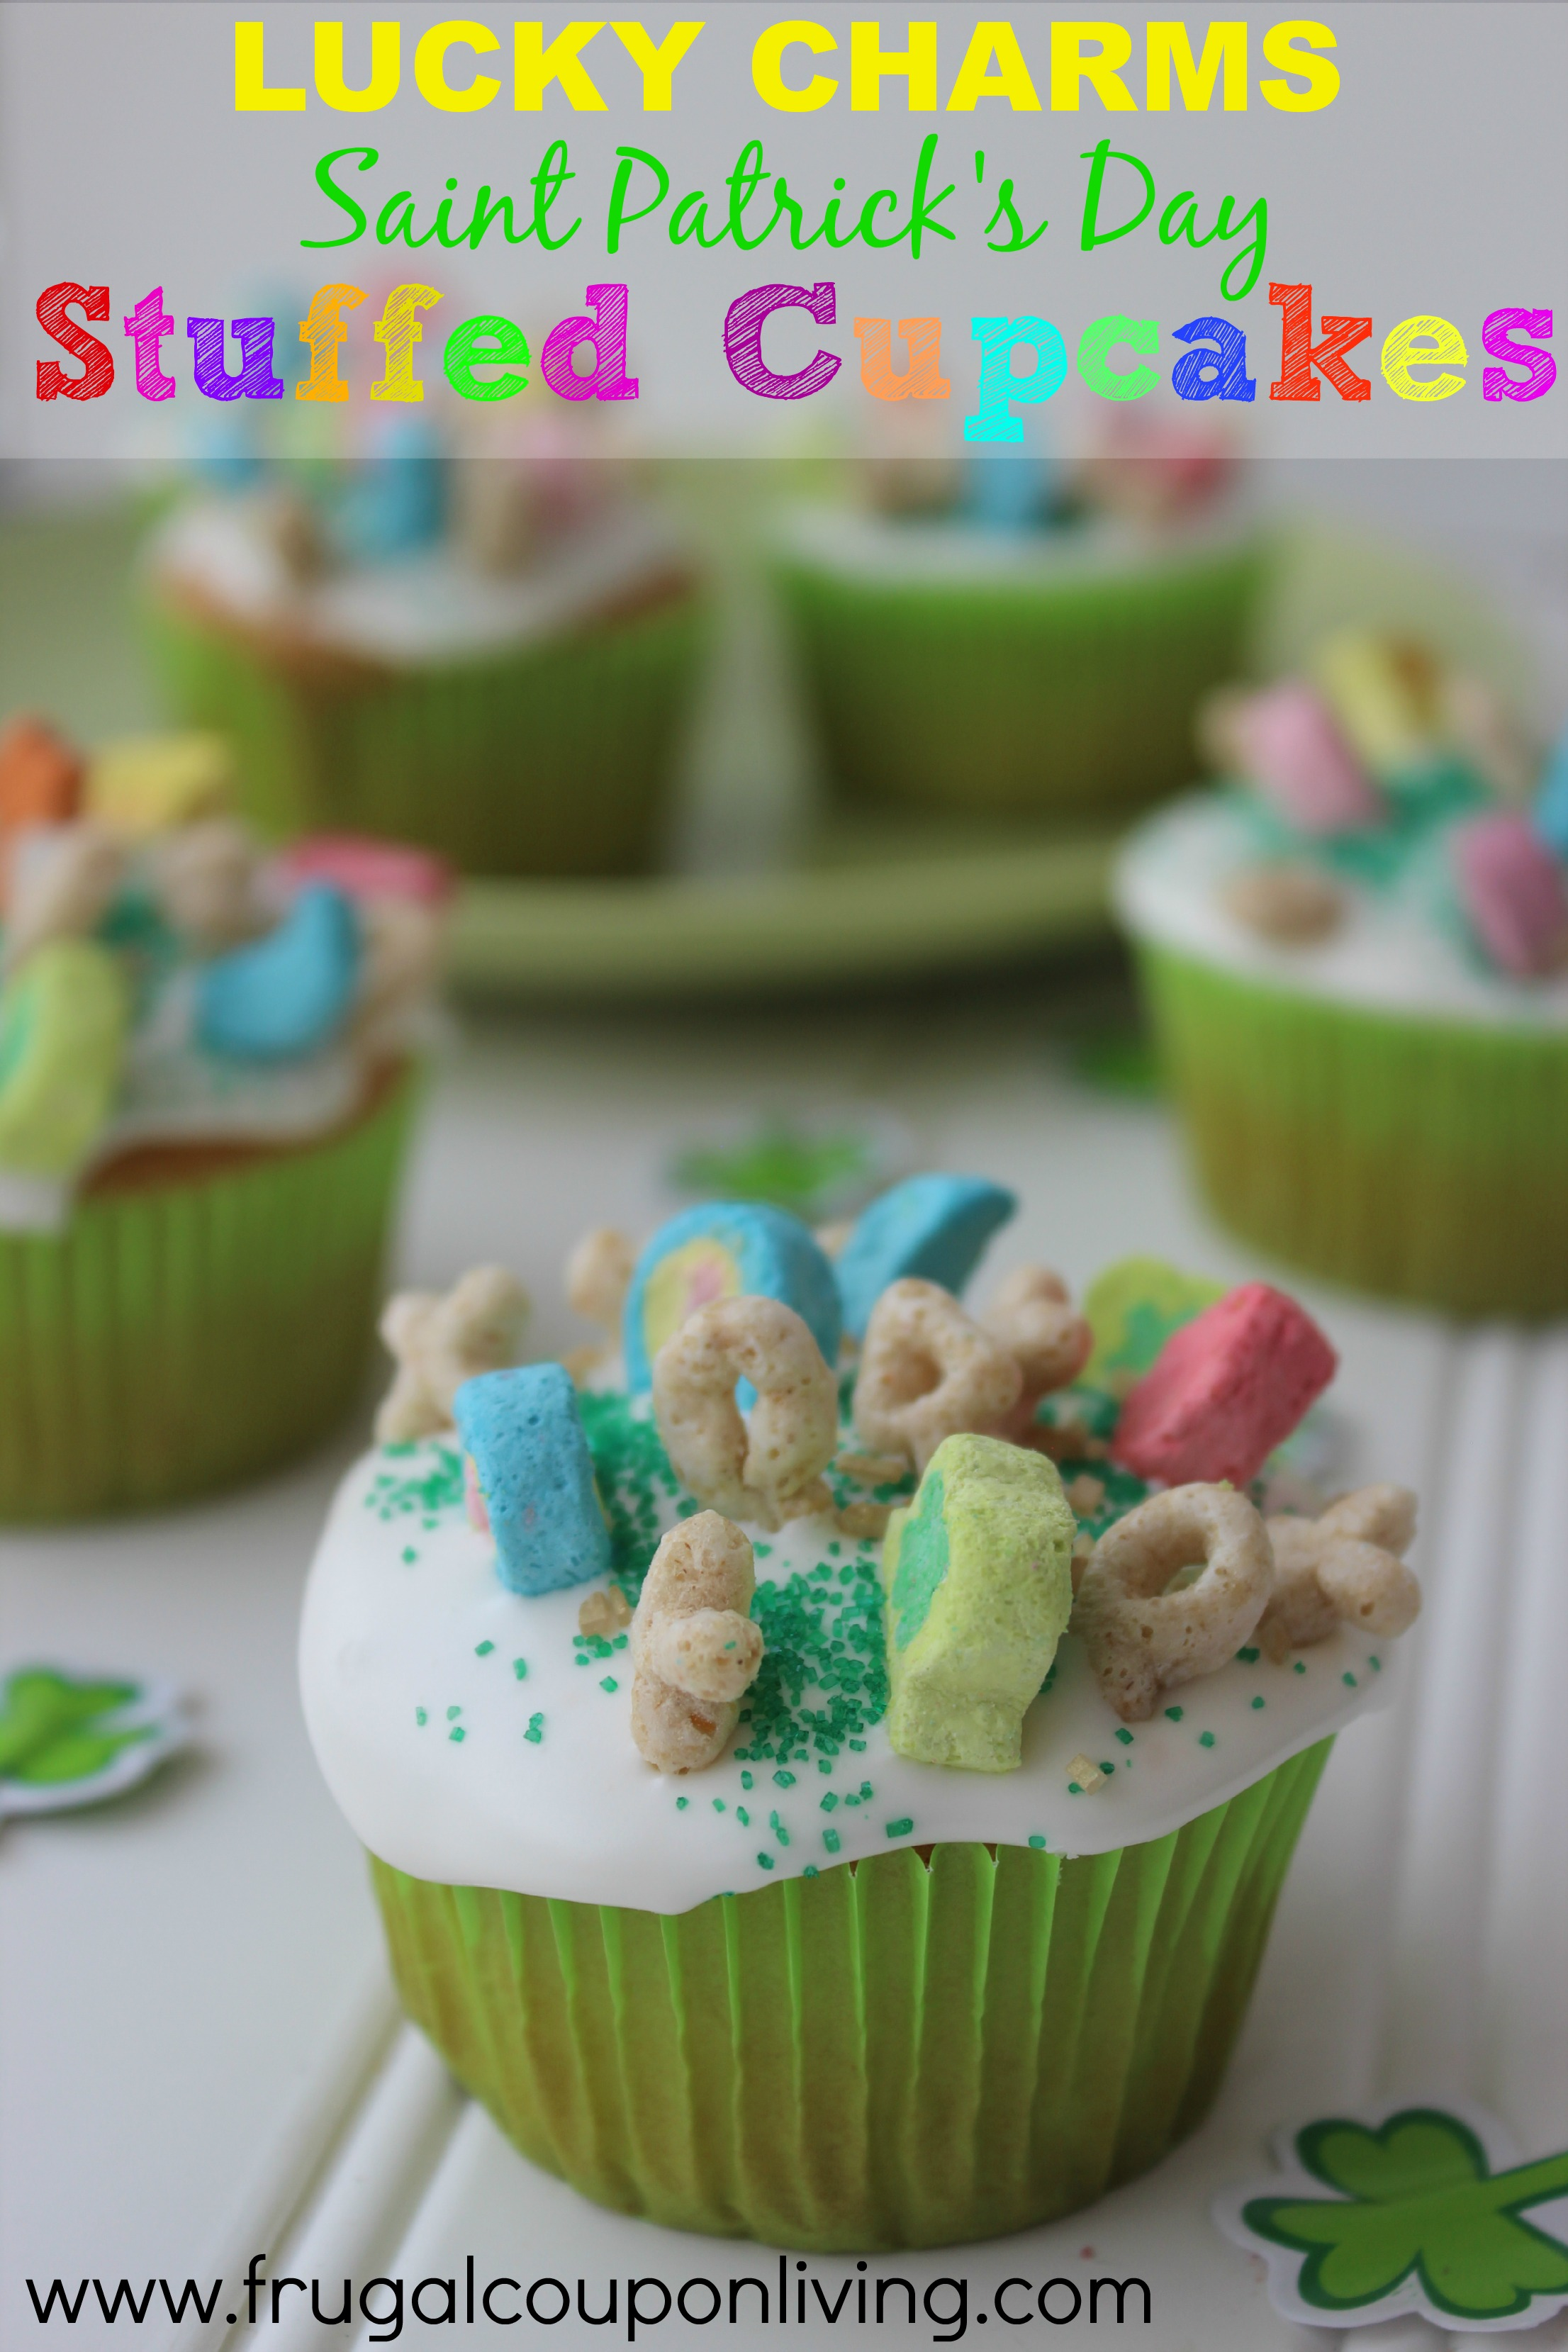 lucky-charms-cupcakes-frugal-coupon-living.jpg